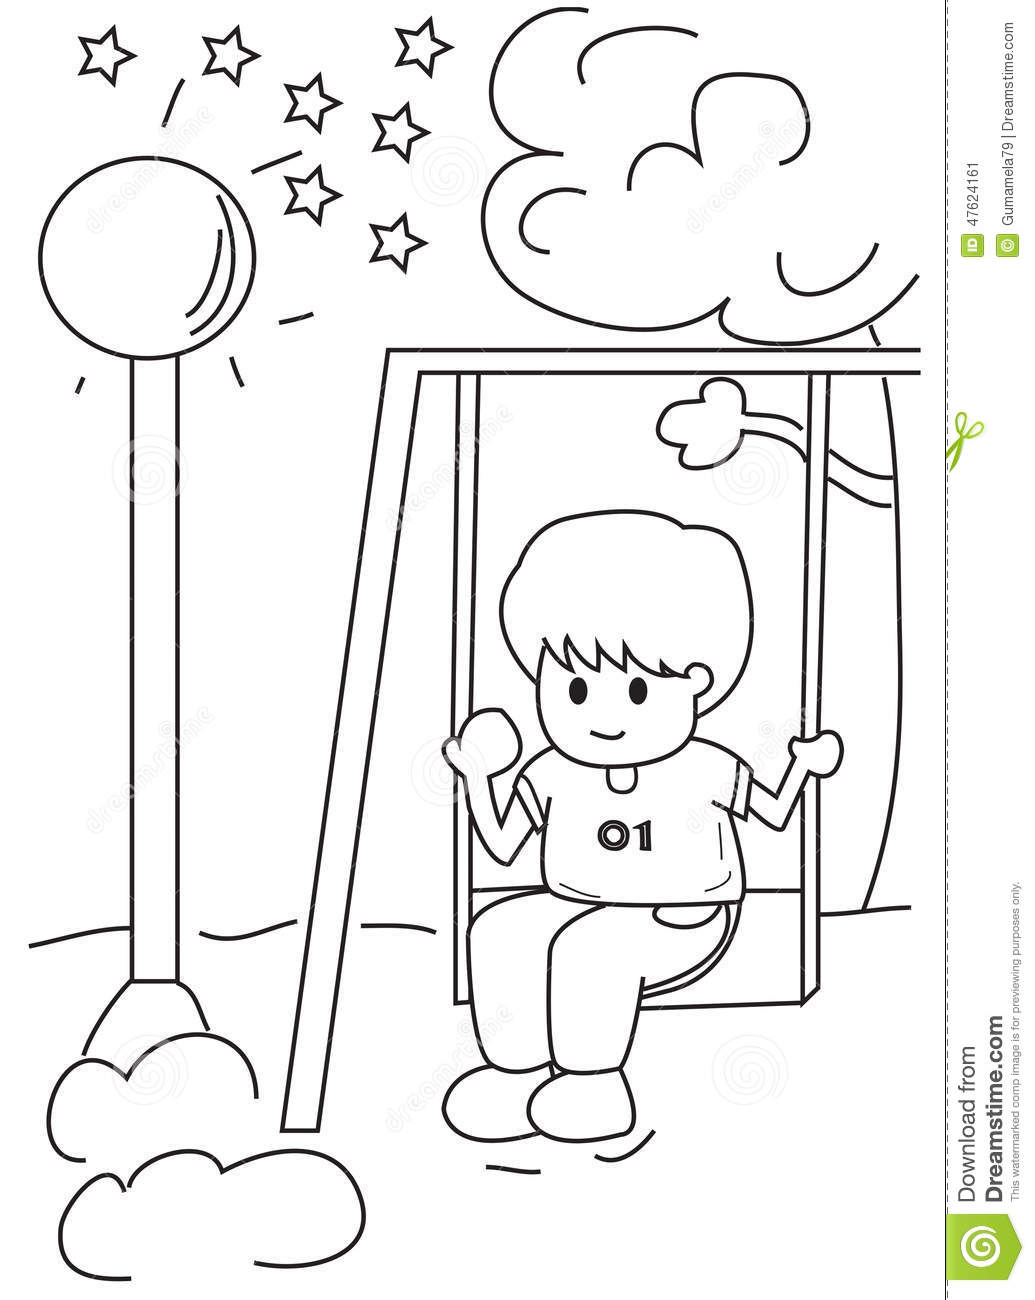 hand drawn coloring page of a boy on a swing stock illustration